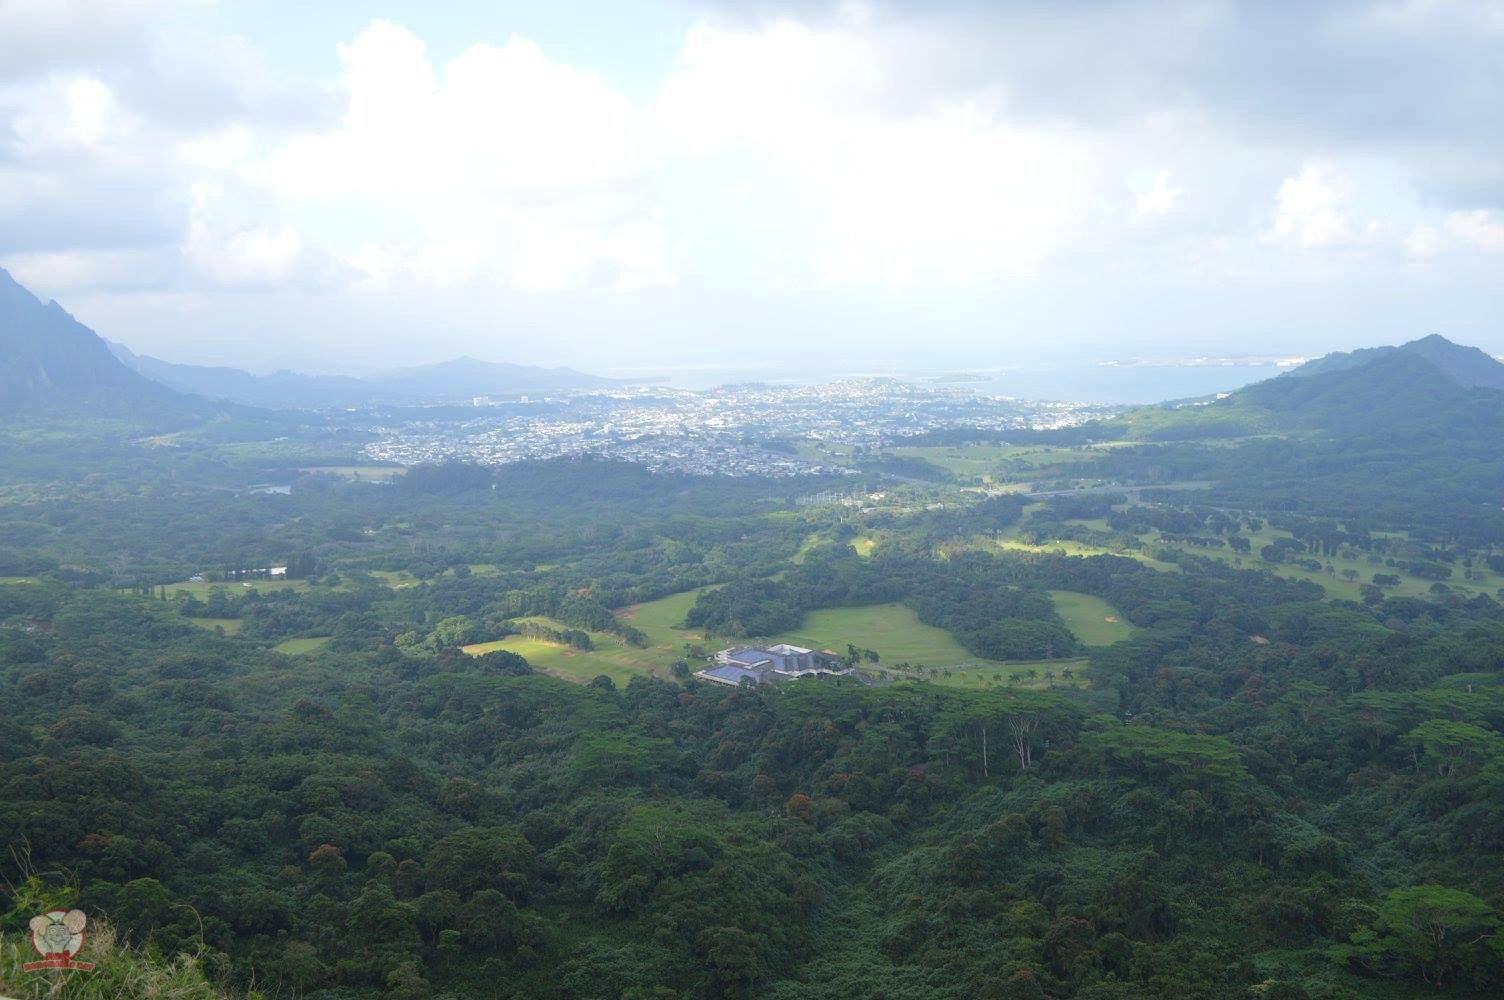 The view from Pali Lookout